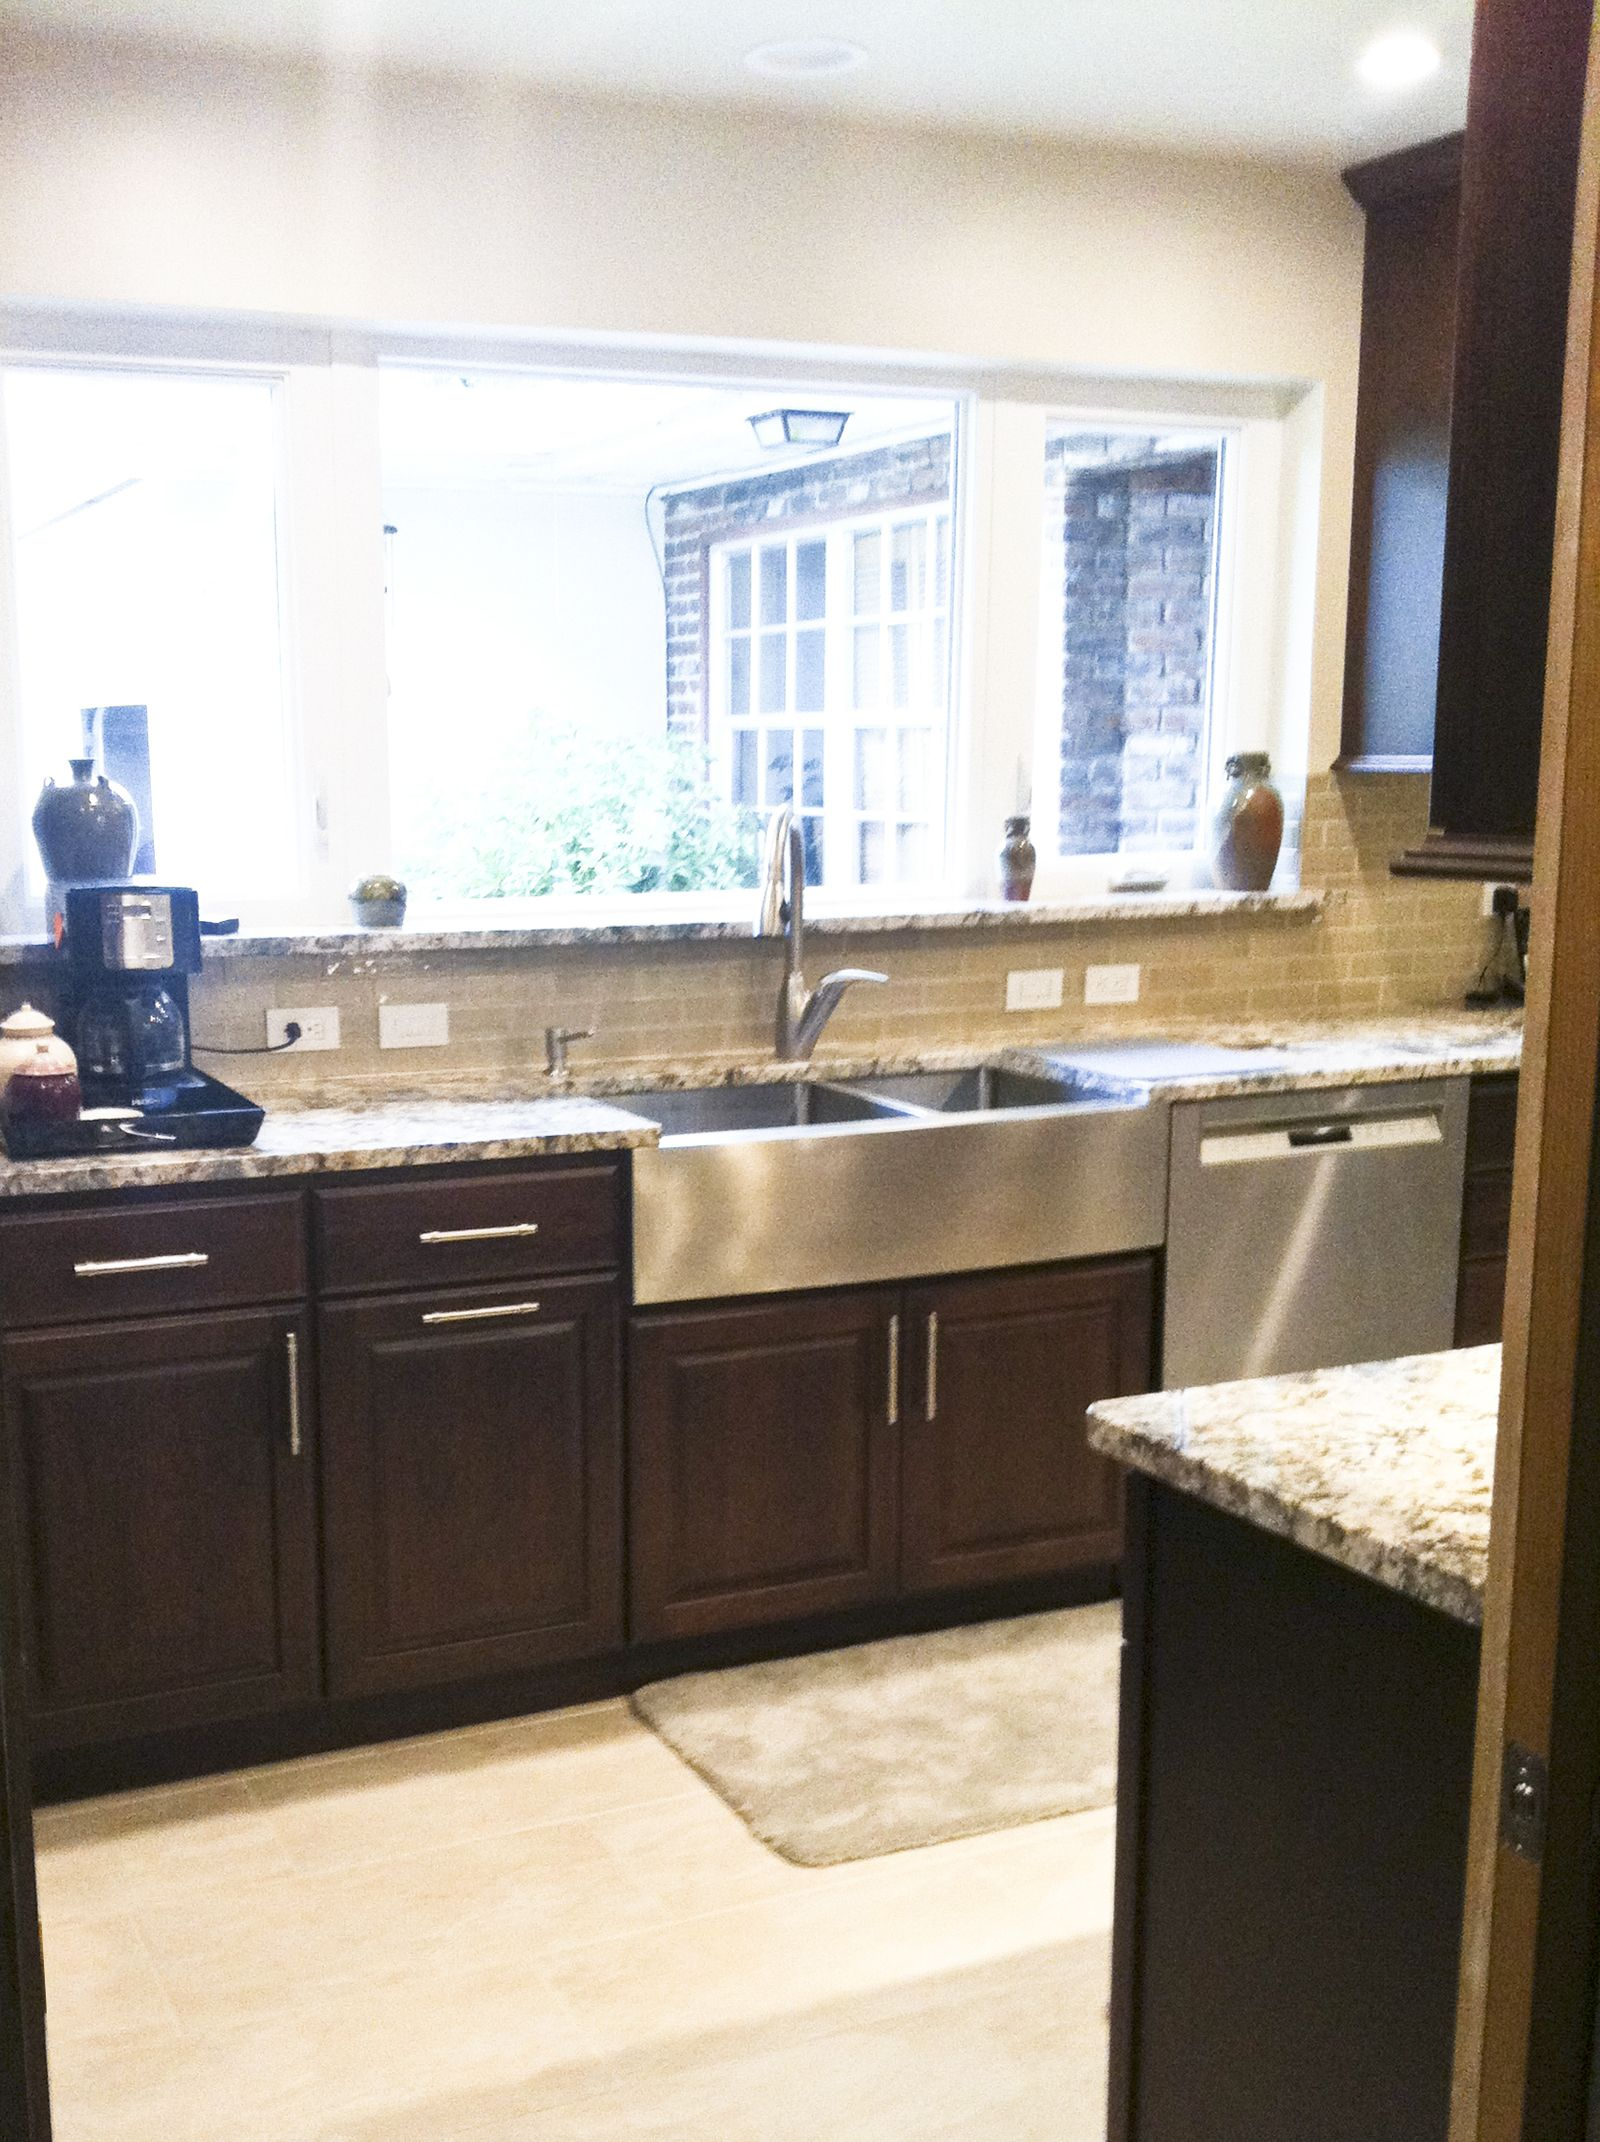 A Kitchen Remodel In Daytona Beach Florida Took A Kitchen From Shabby To Upscale And Moder Farmhouse Sink Kitchen Kitchen Remodel Kitchen Color Dark Cabinets